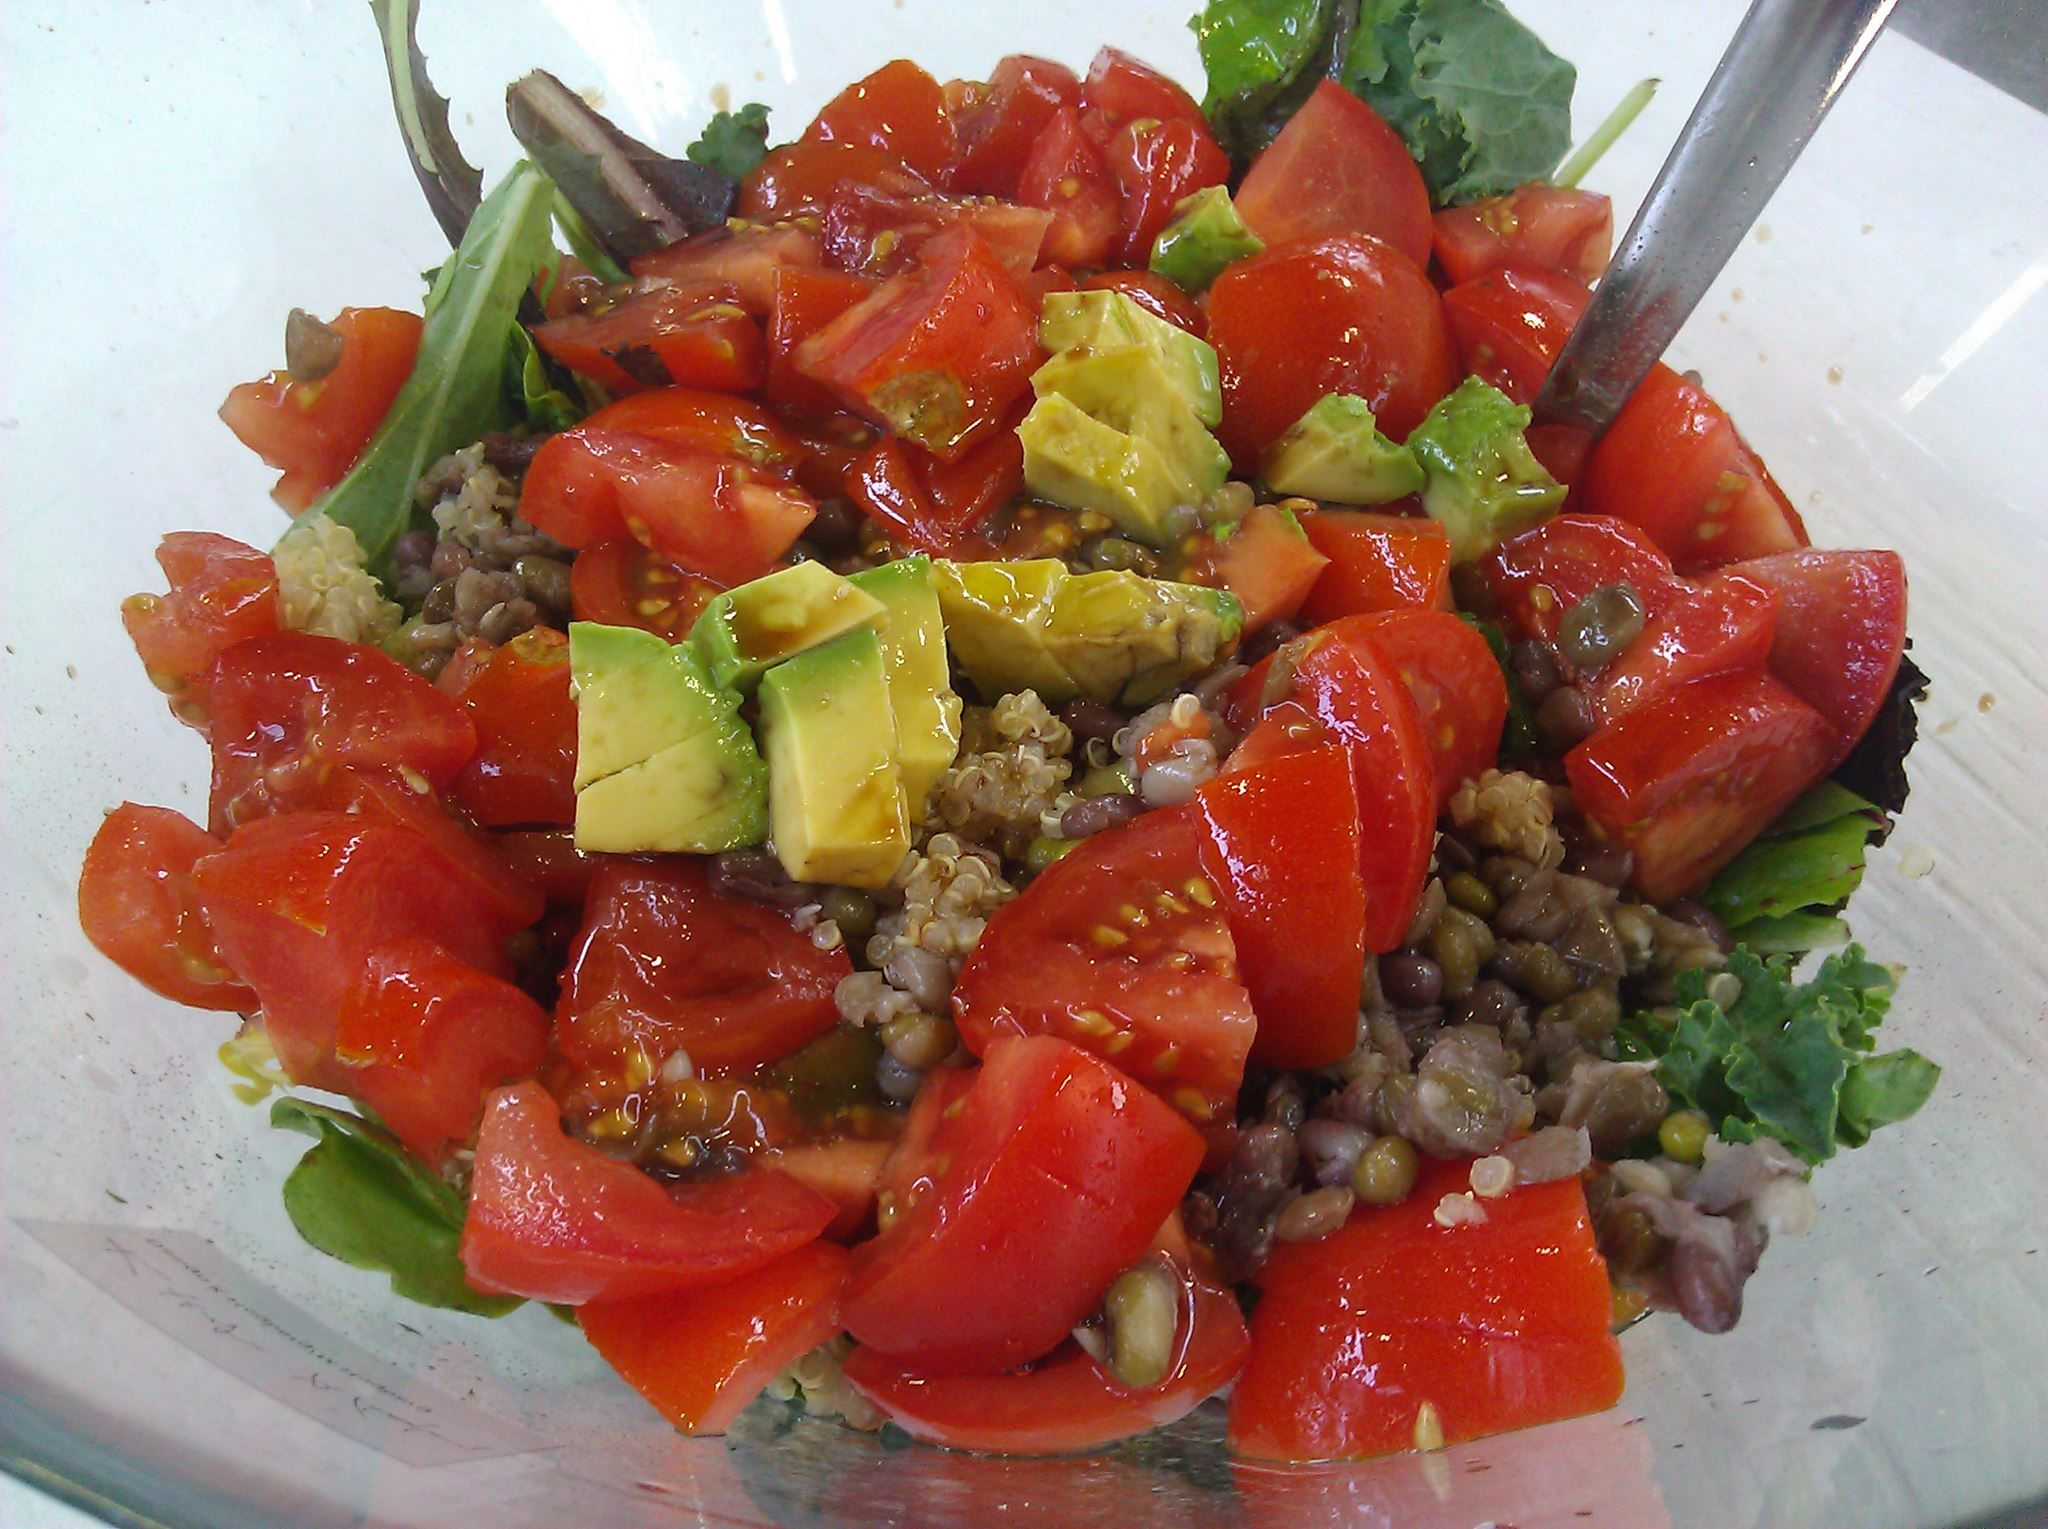 Pin by CORE Foods on Huge Salad | Pinterest